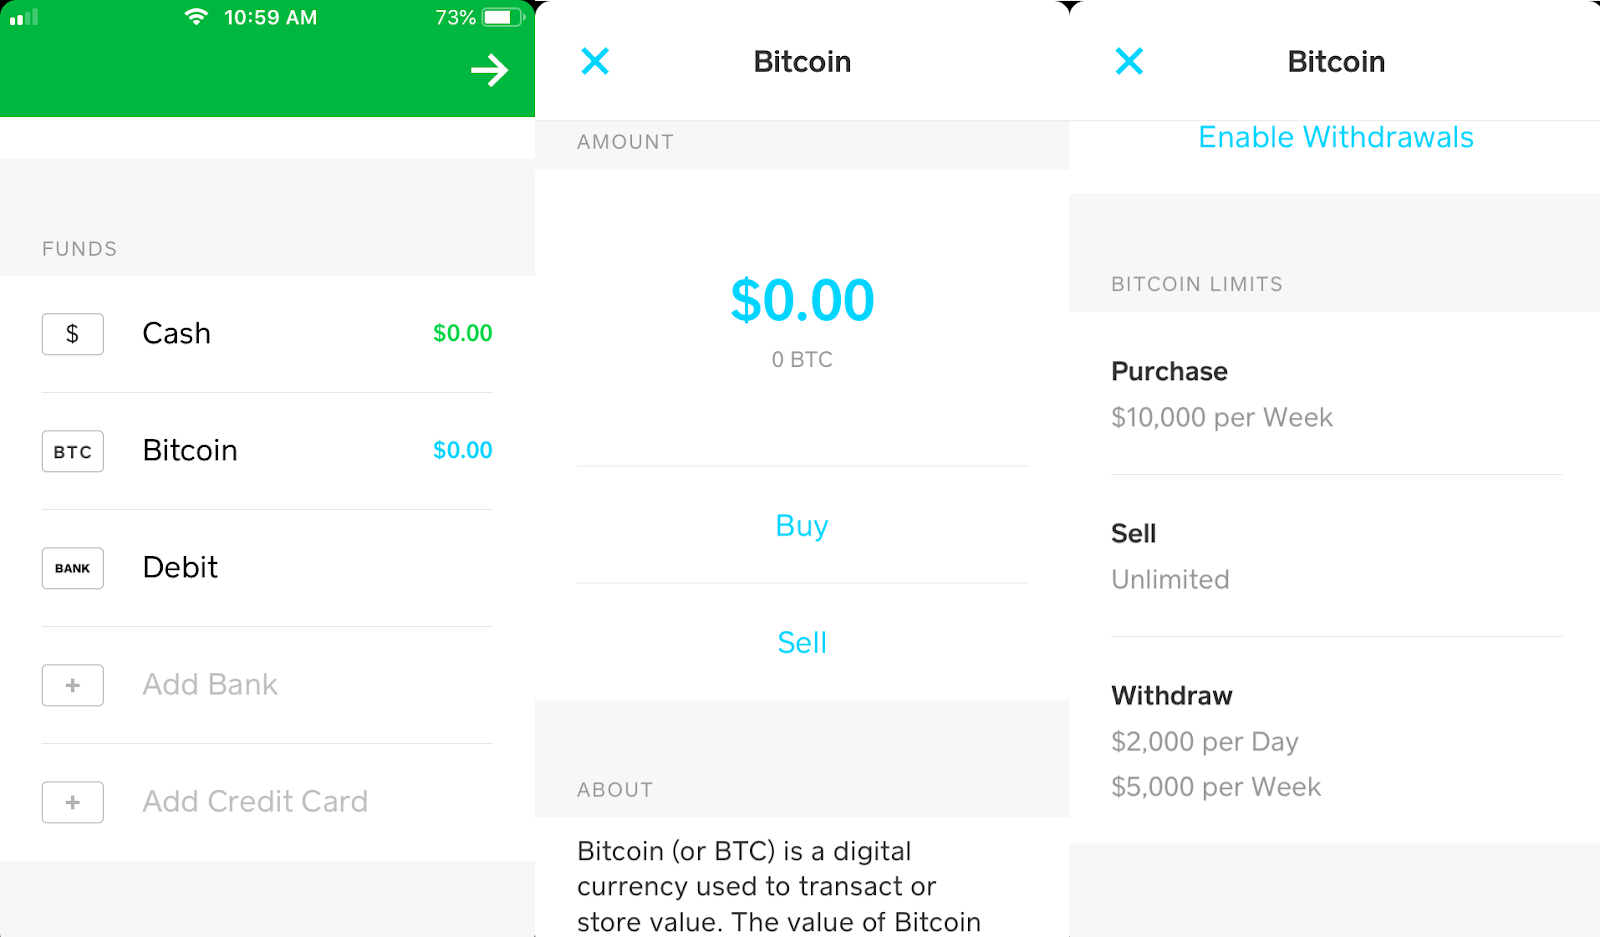 How to Buy Bitcoin with Venmo: Step by Step, With Photos